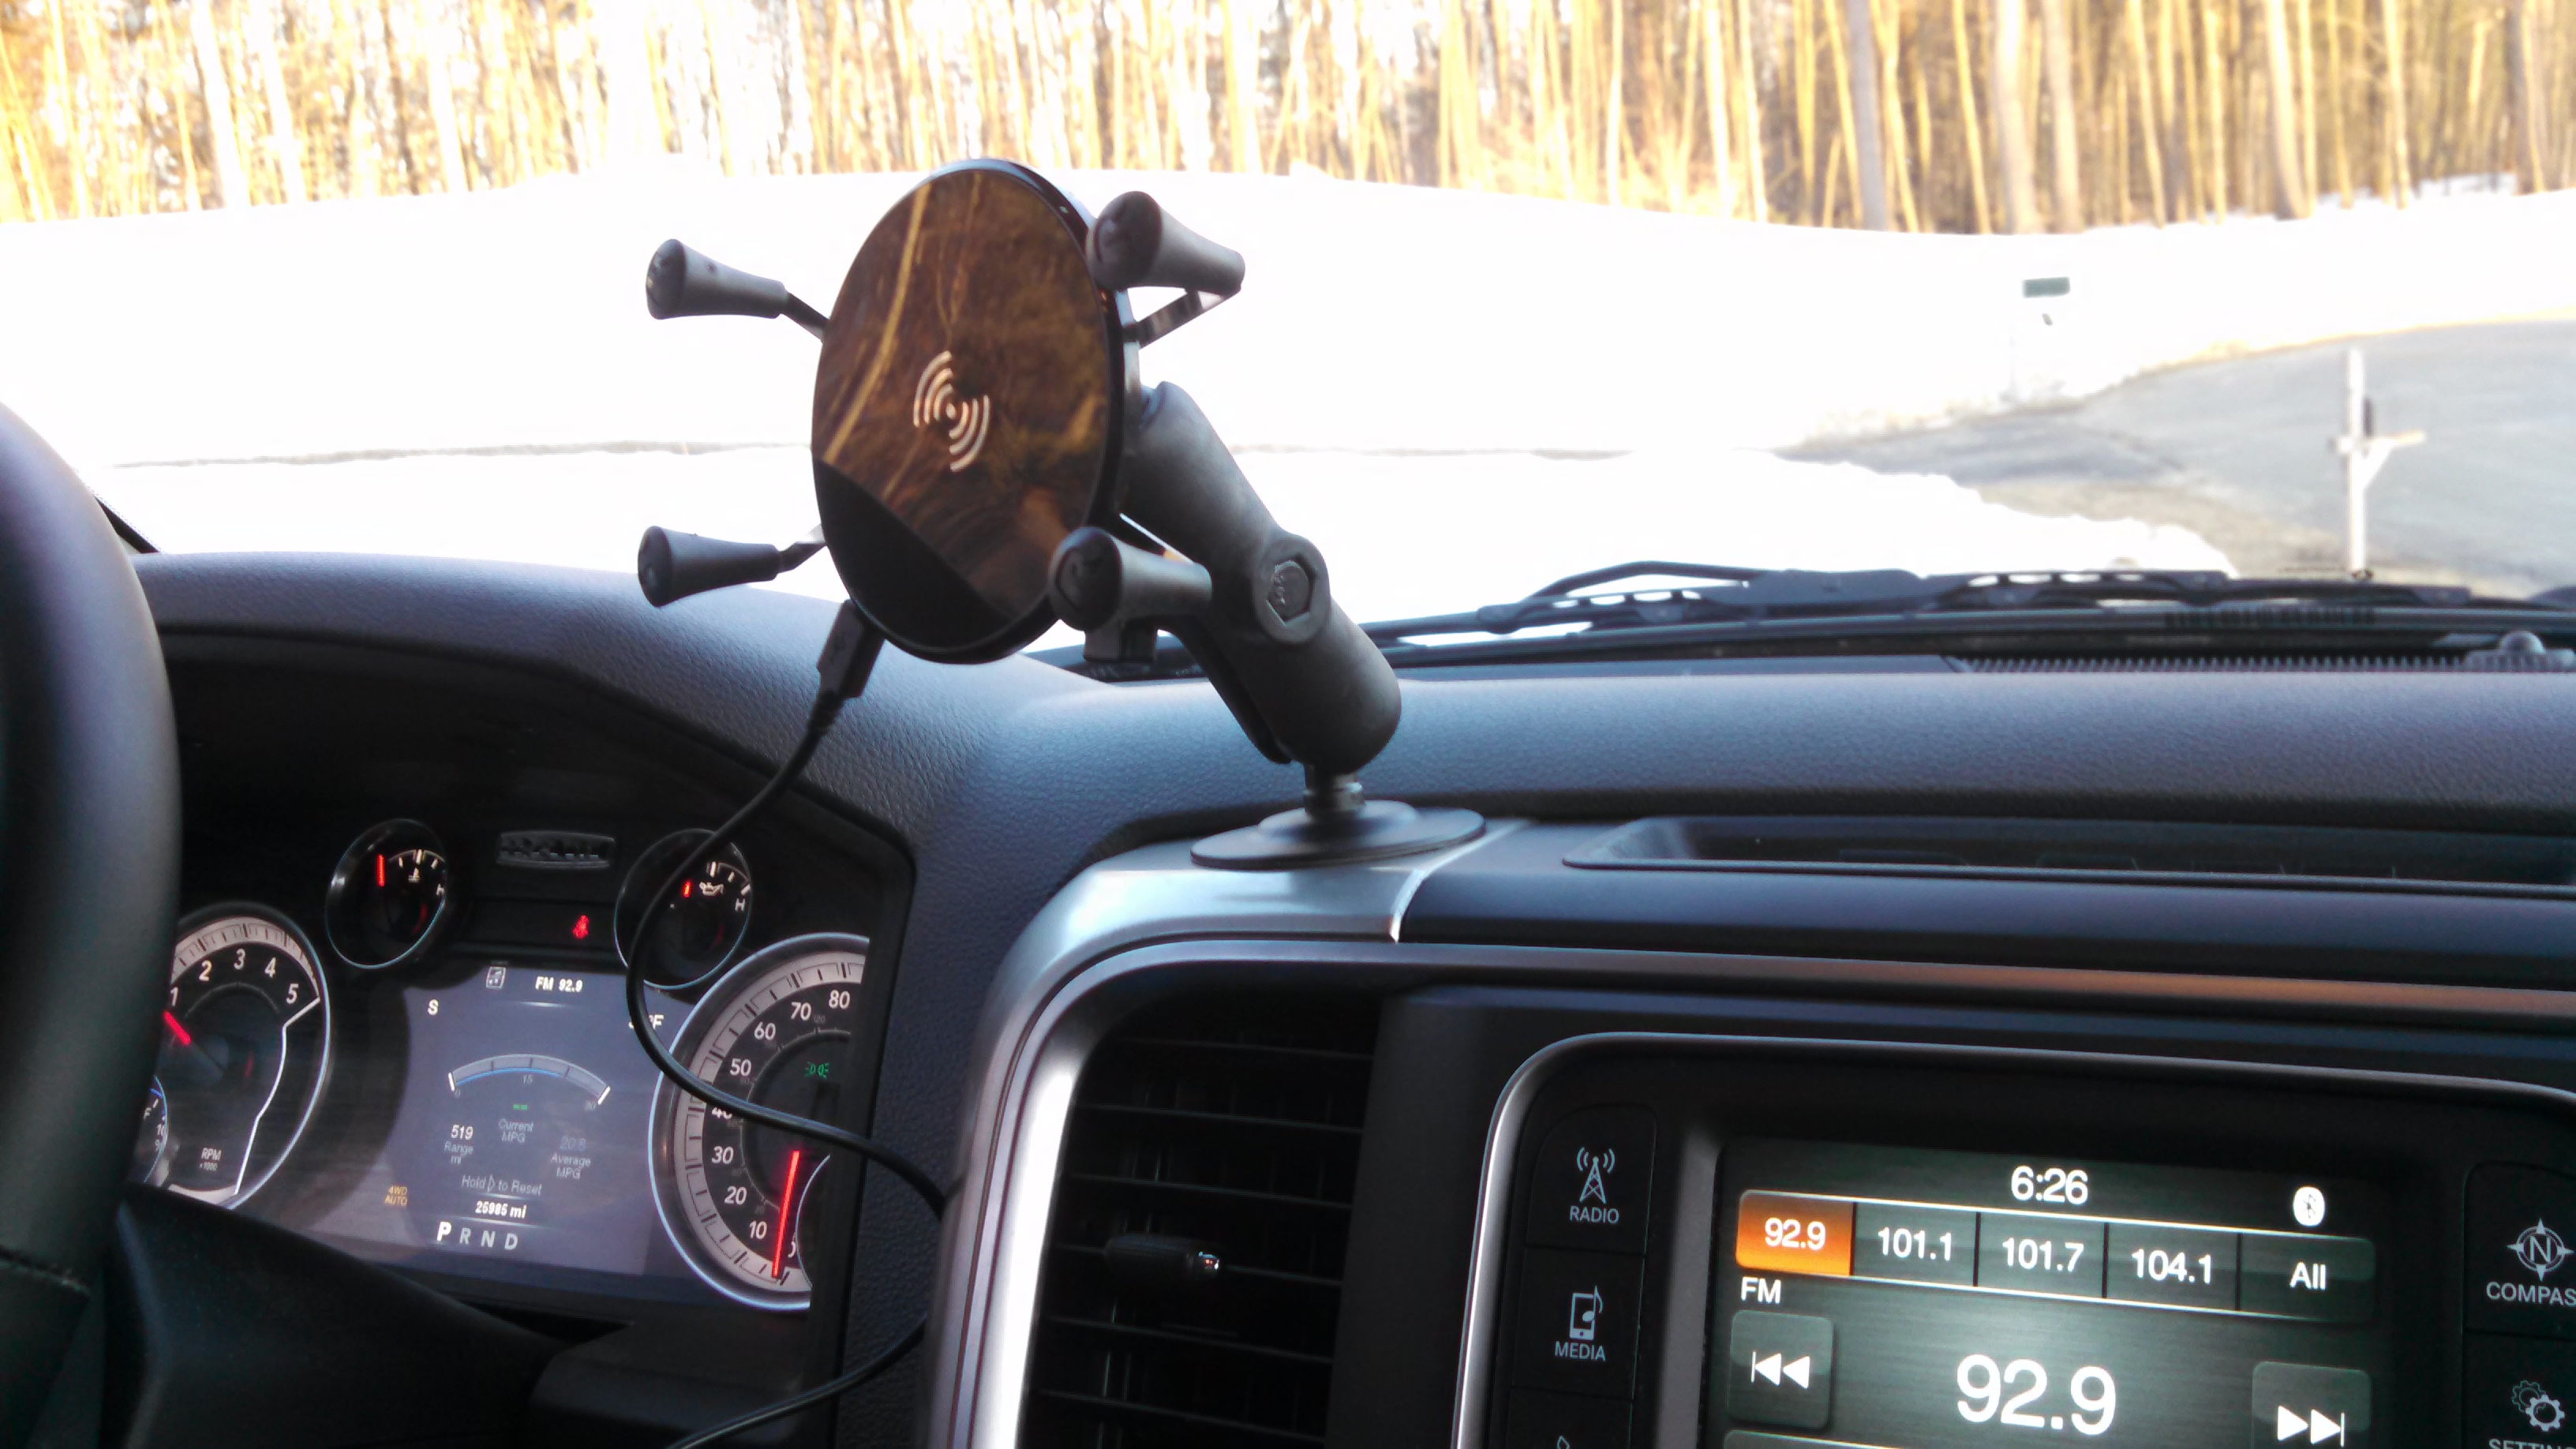 Phone mount with Qi Wireless charging